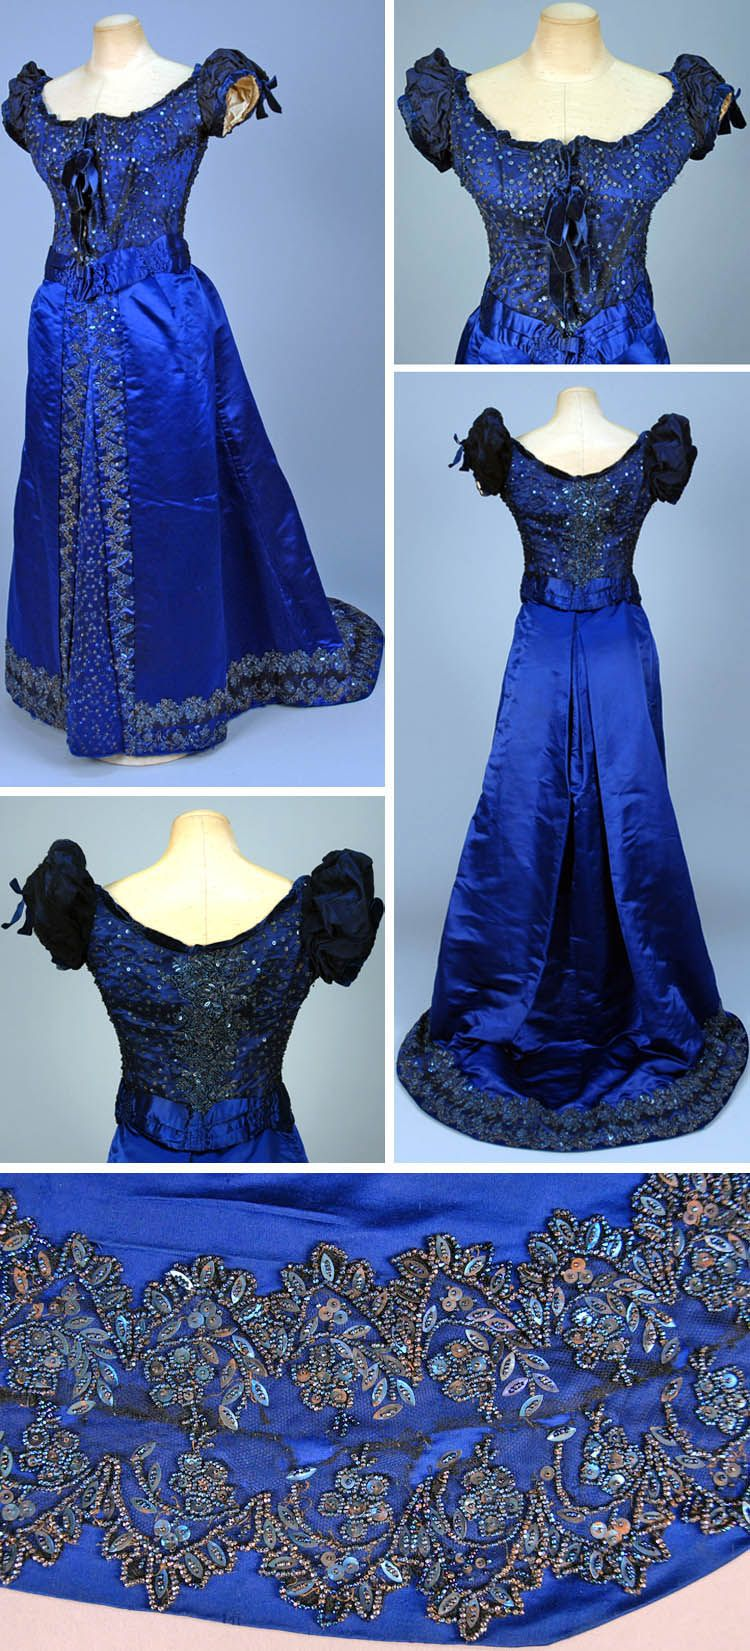 d3380a635d4e8 Evening dress, Worth, circa 1880s. Two-piece sapphire blue silk satin.  Boned bodice covered in black tulle studded with beads and sequins.